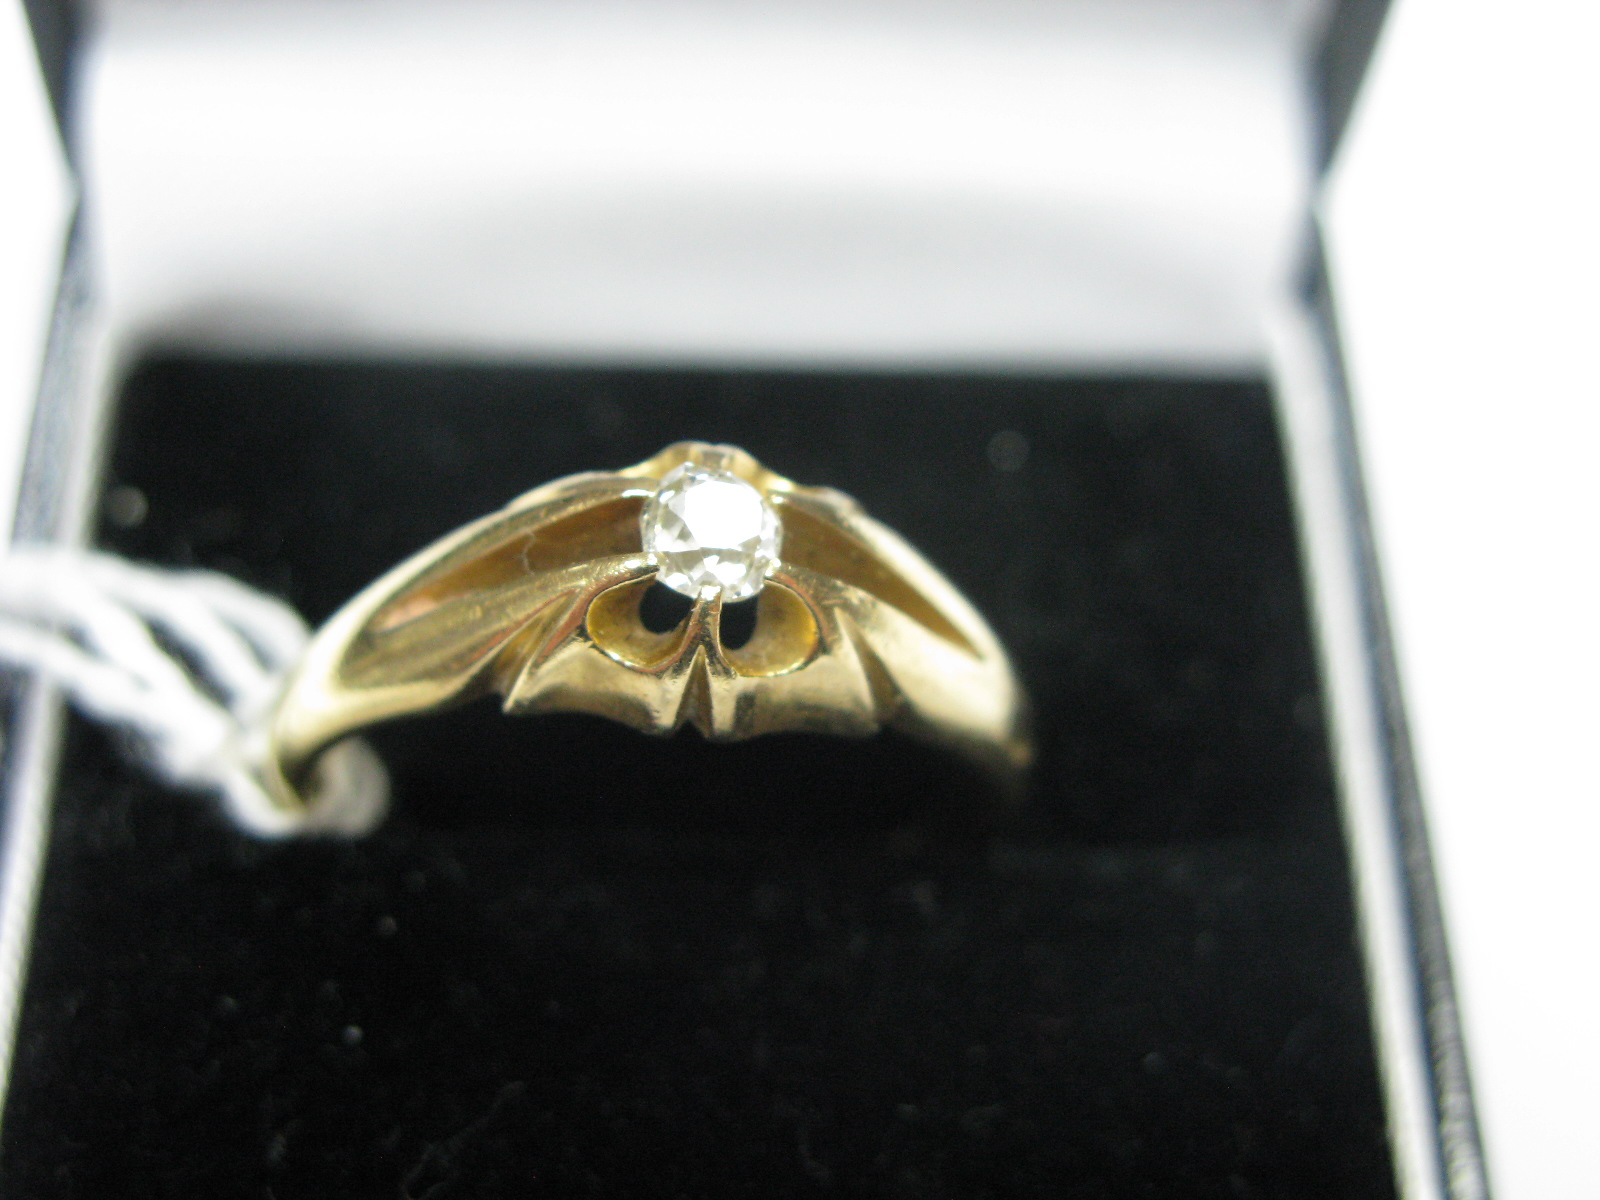 Lot 1353 - A Victorian Single Stone Diamond Ring, the old cut stone claw set between openwork shoulders.